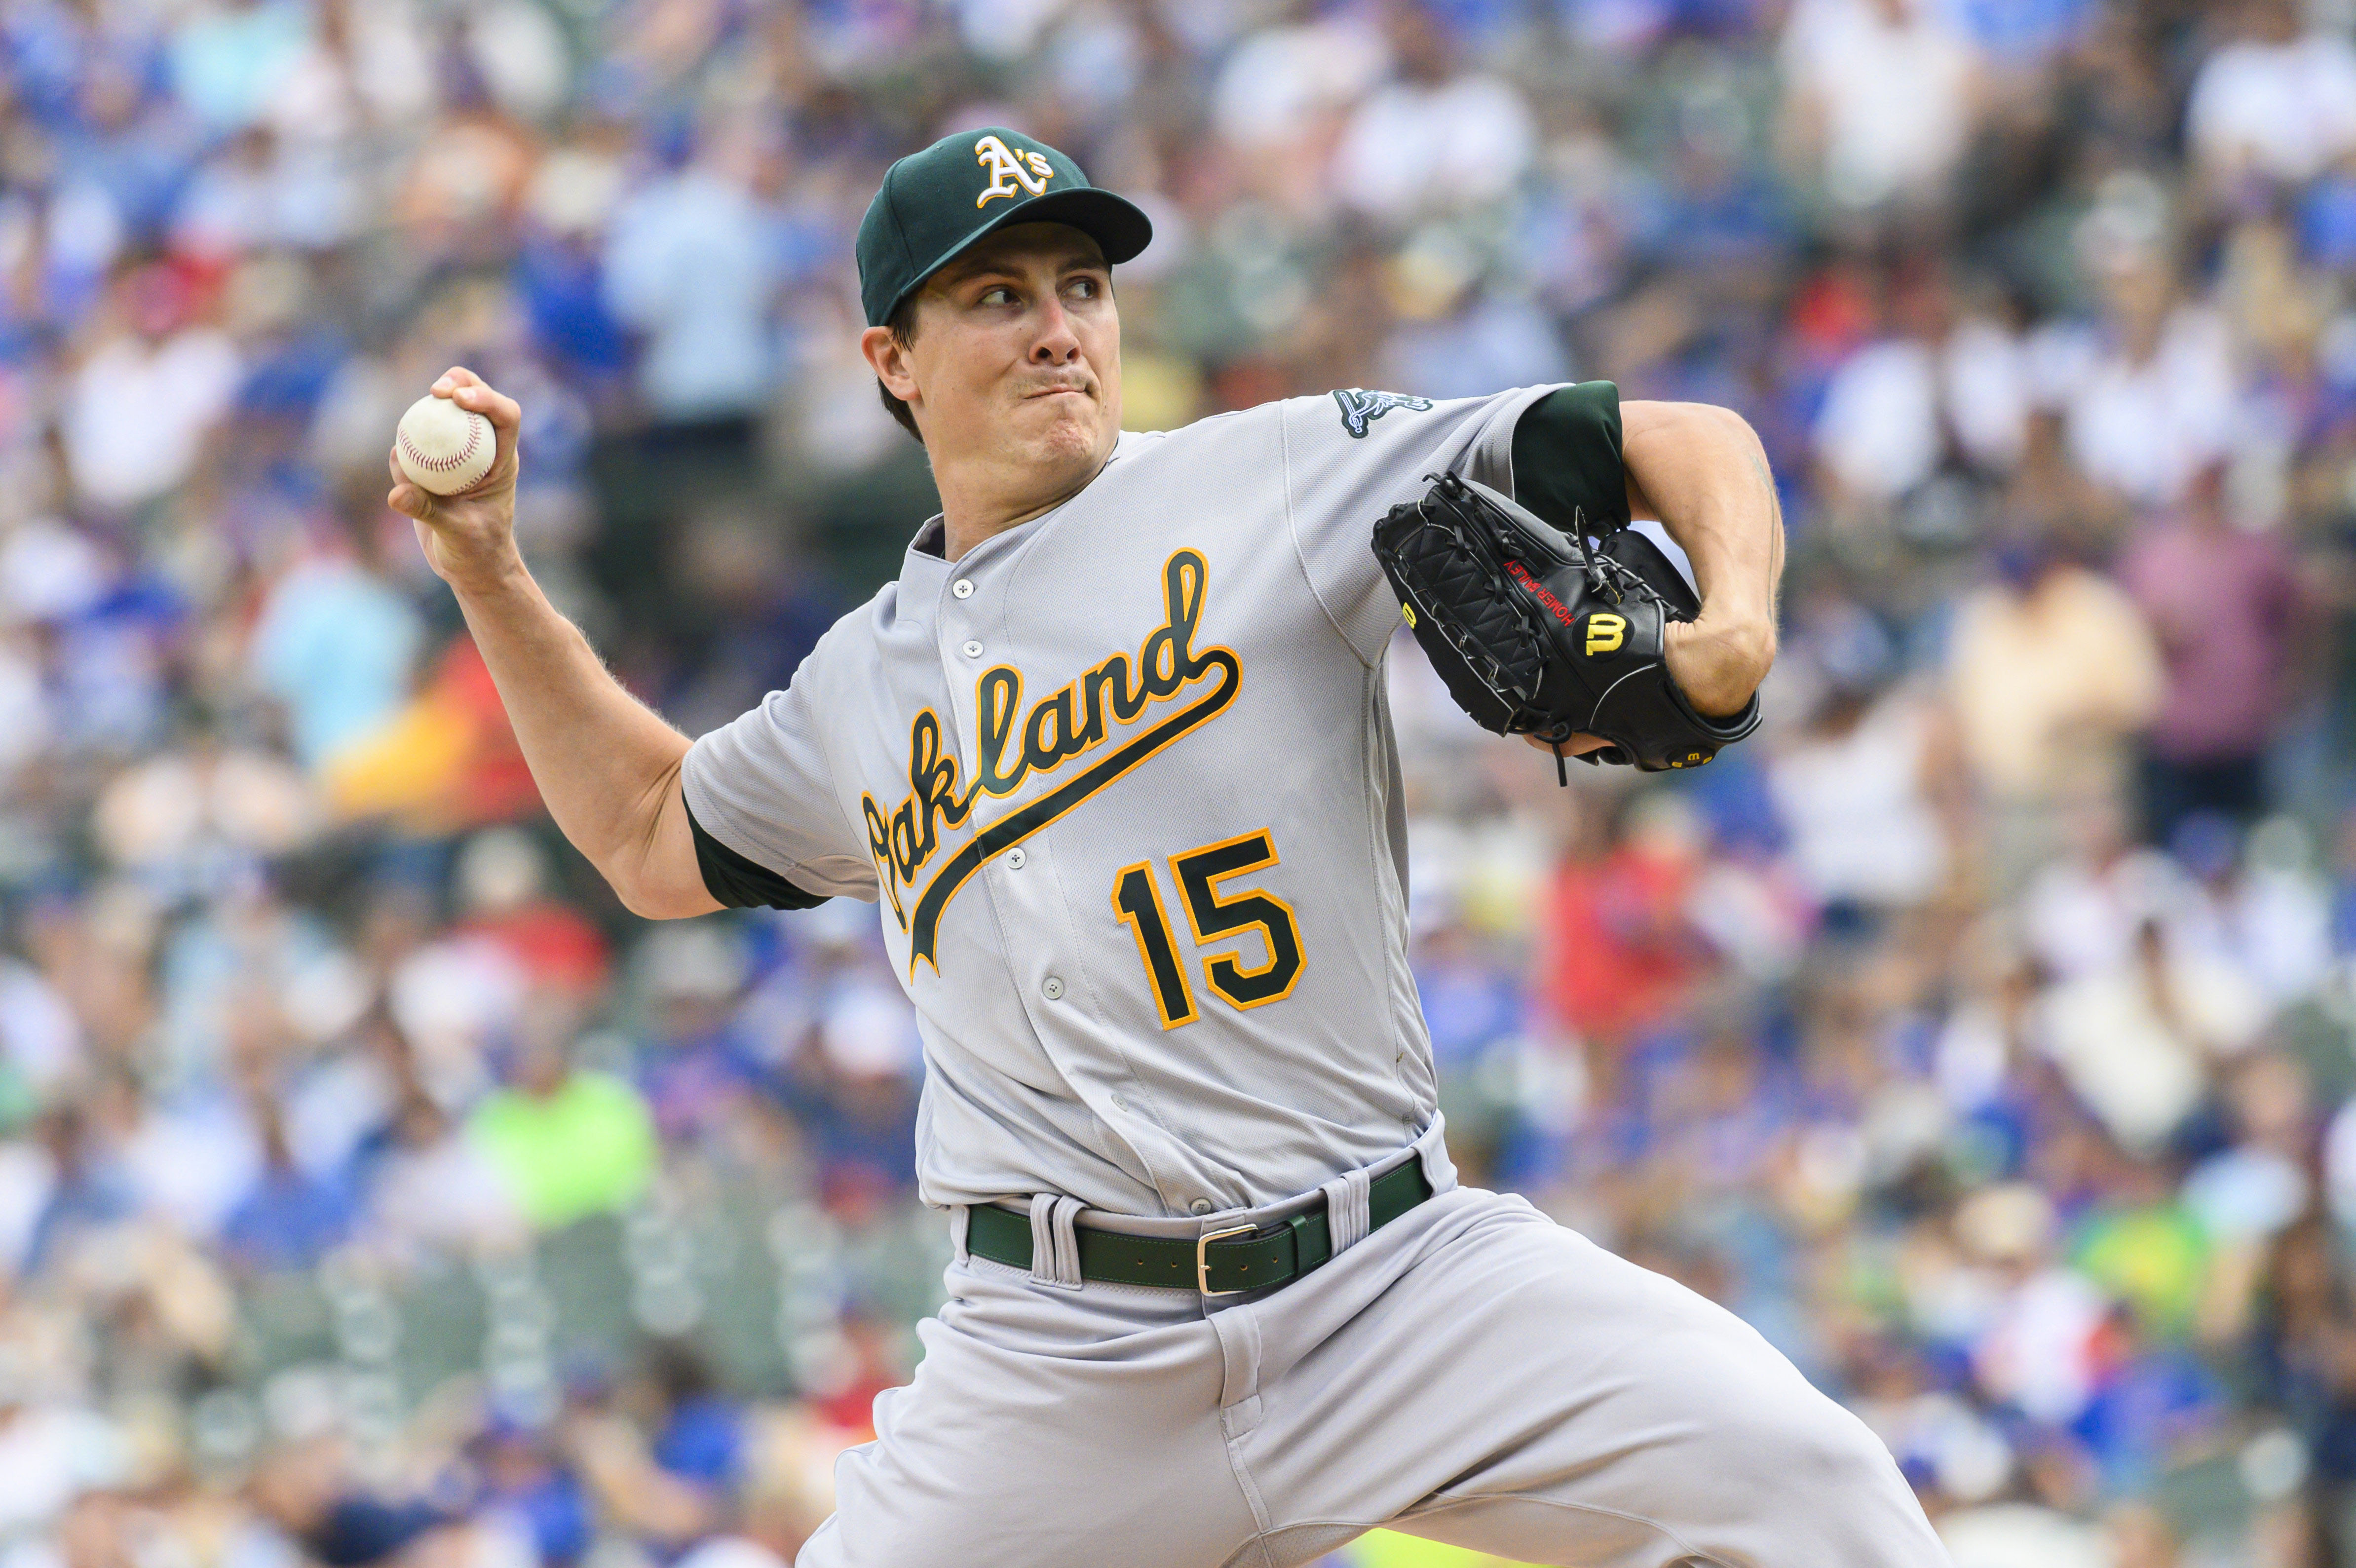 Athletics home underdogs vs. Yankees on Tuesday MLB odds